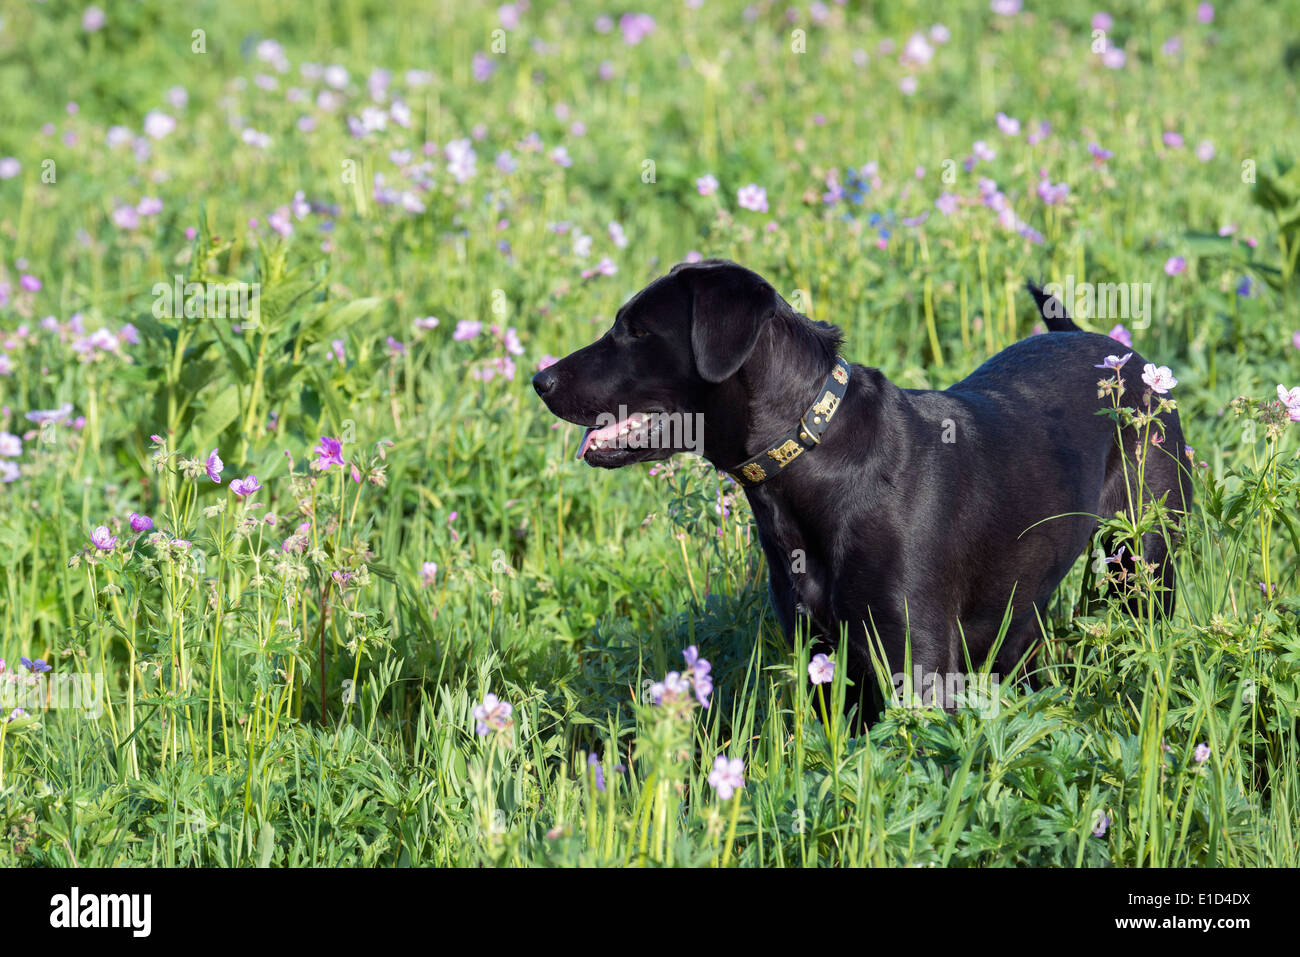 A black labrador dog in tall meadow grass. Stock Photo